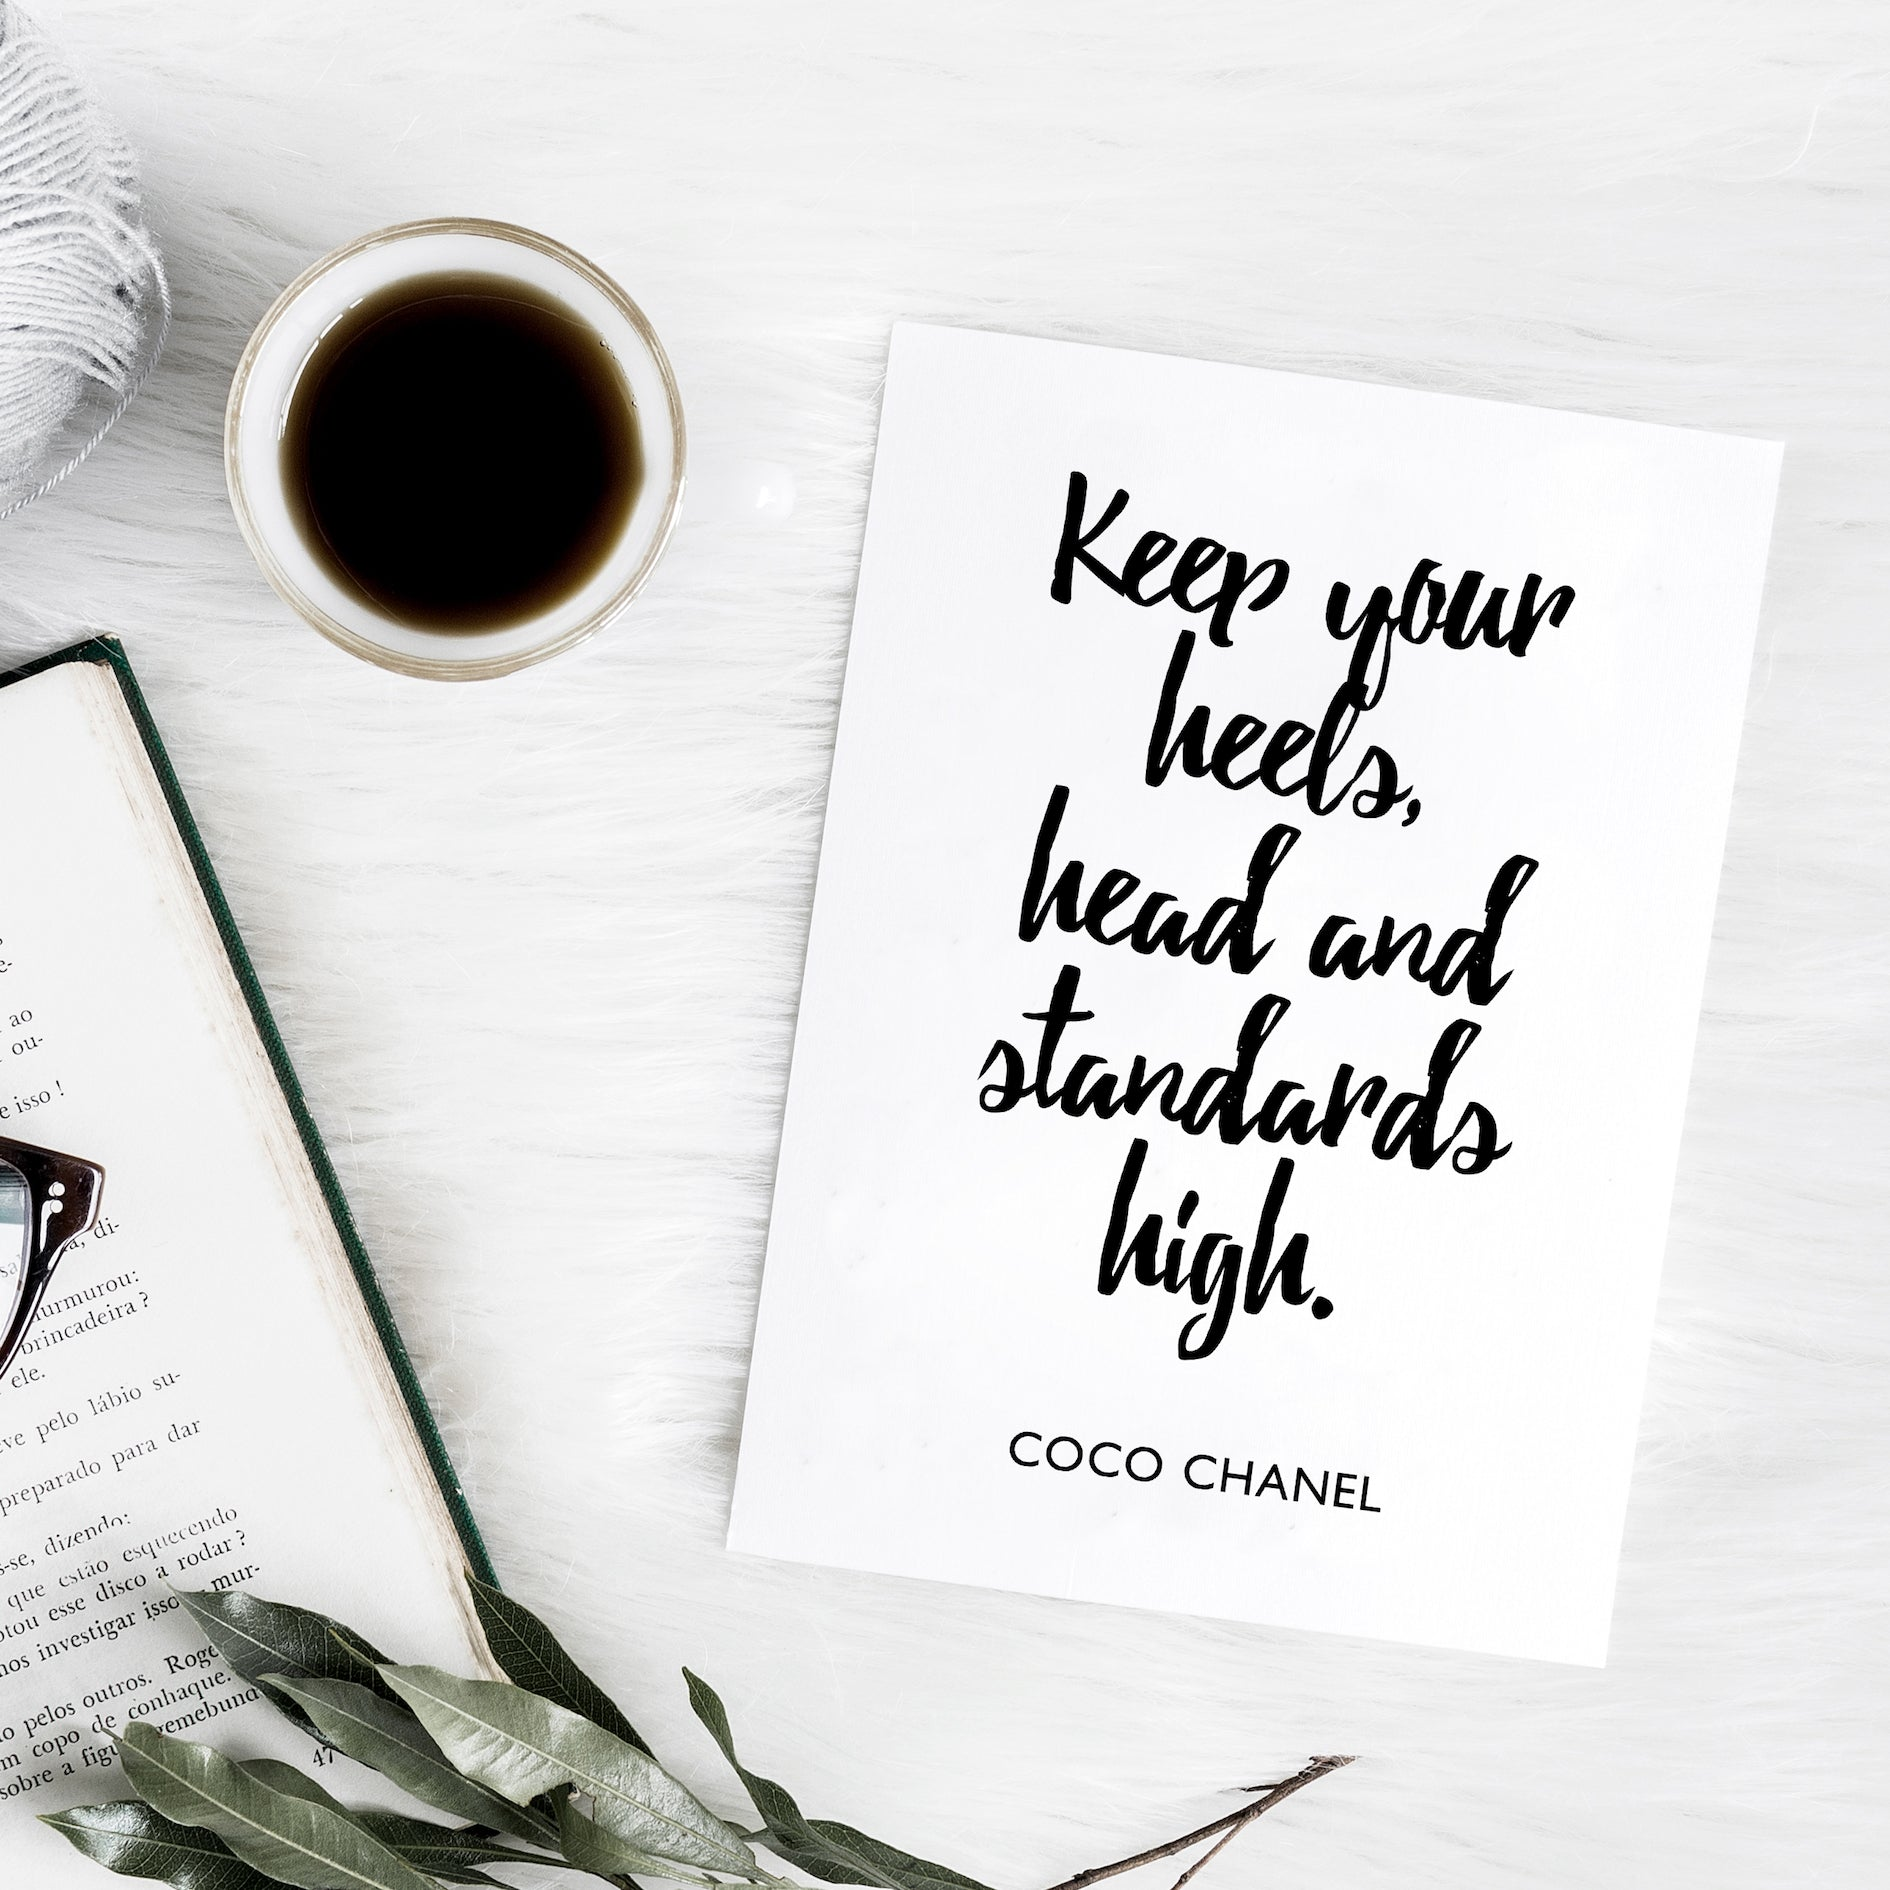 Coco Chanel 'Keep your heels, head and standards high' brush letter monochrome print | ink & white